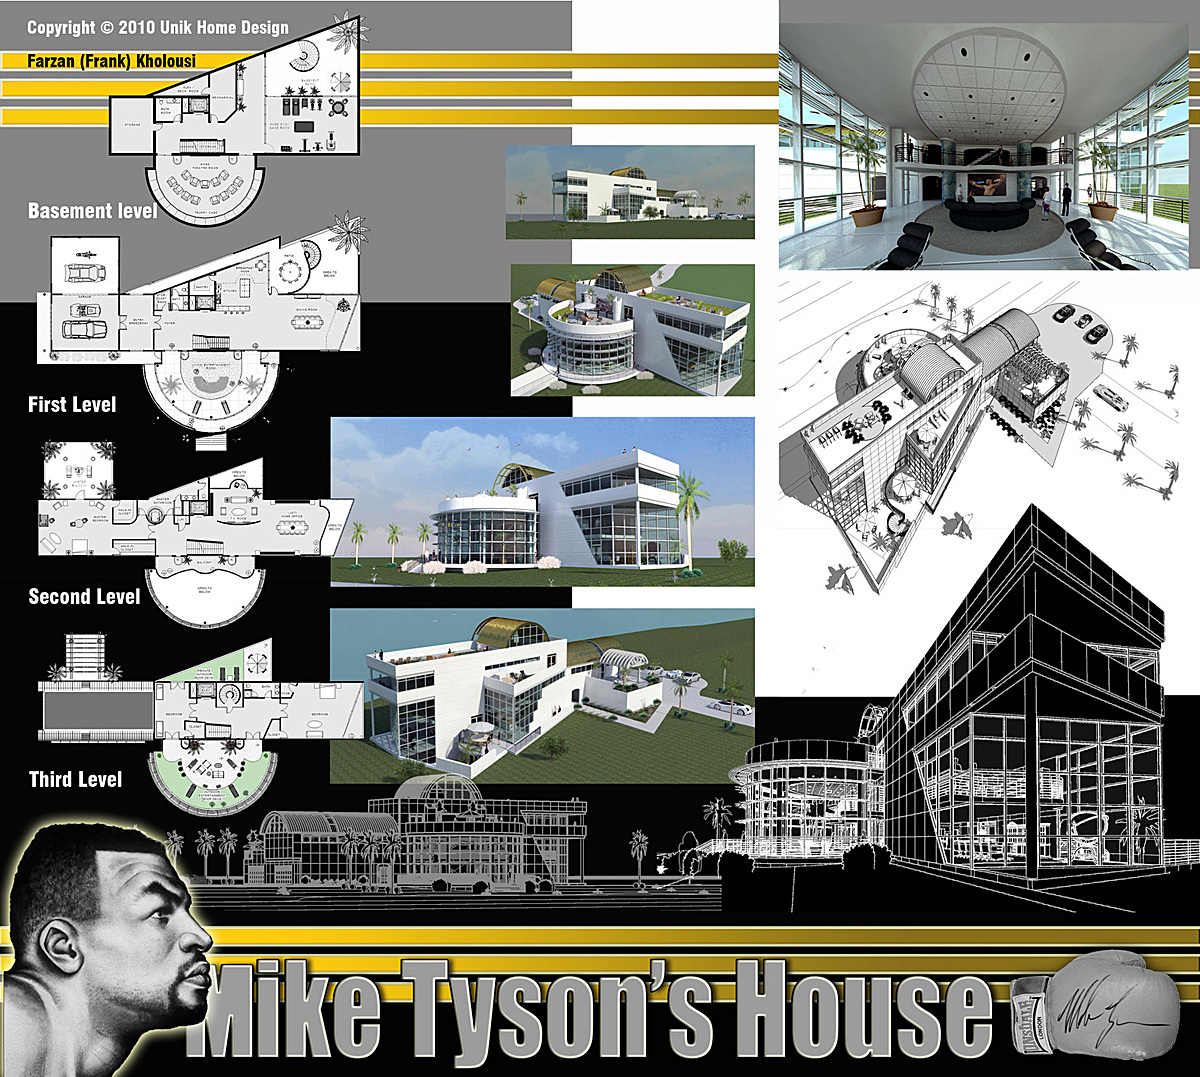 Photoshop was used for graphic boards and Revit and SketchUp were used for design and layout.